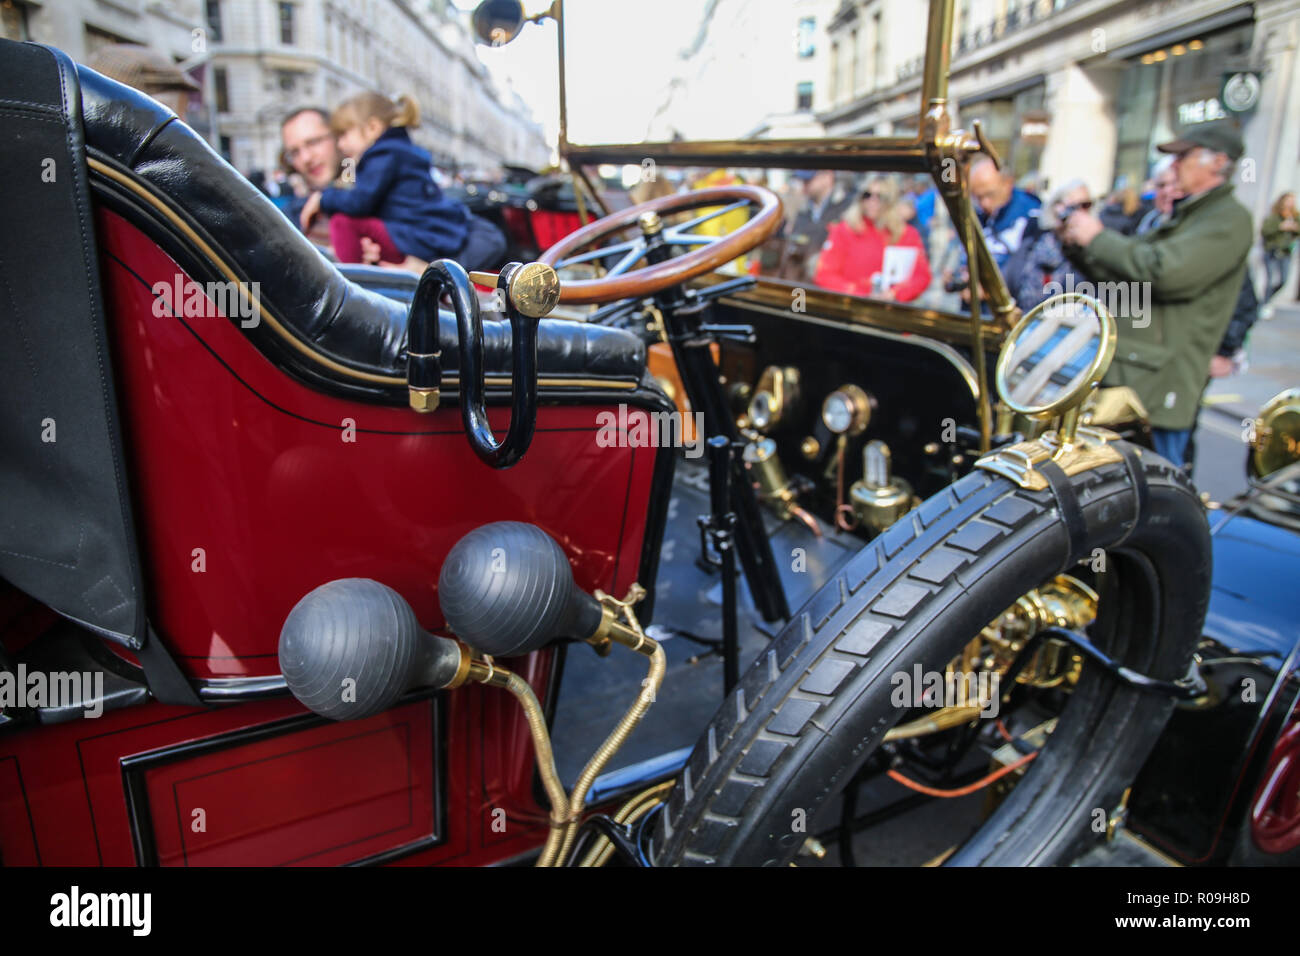 London, UK. 3 November 2018.  Bonhams London to Brighton Veteran Car Run 2018 this year the celebration will be  be  the 122nd anniversary of the original Emancipation Run of 1896 which celebrated the passing into law the Locomotives on the Highway Act so raising the speed limit for 'light automobiles' from 4 mph to 14 mph and abolishing the need for a man to walk in front of all vehicles waving a red flag.@Paul Quezada-Neiman/Alamy Live News - Stock Image